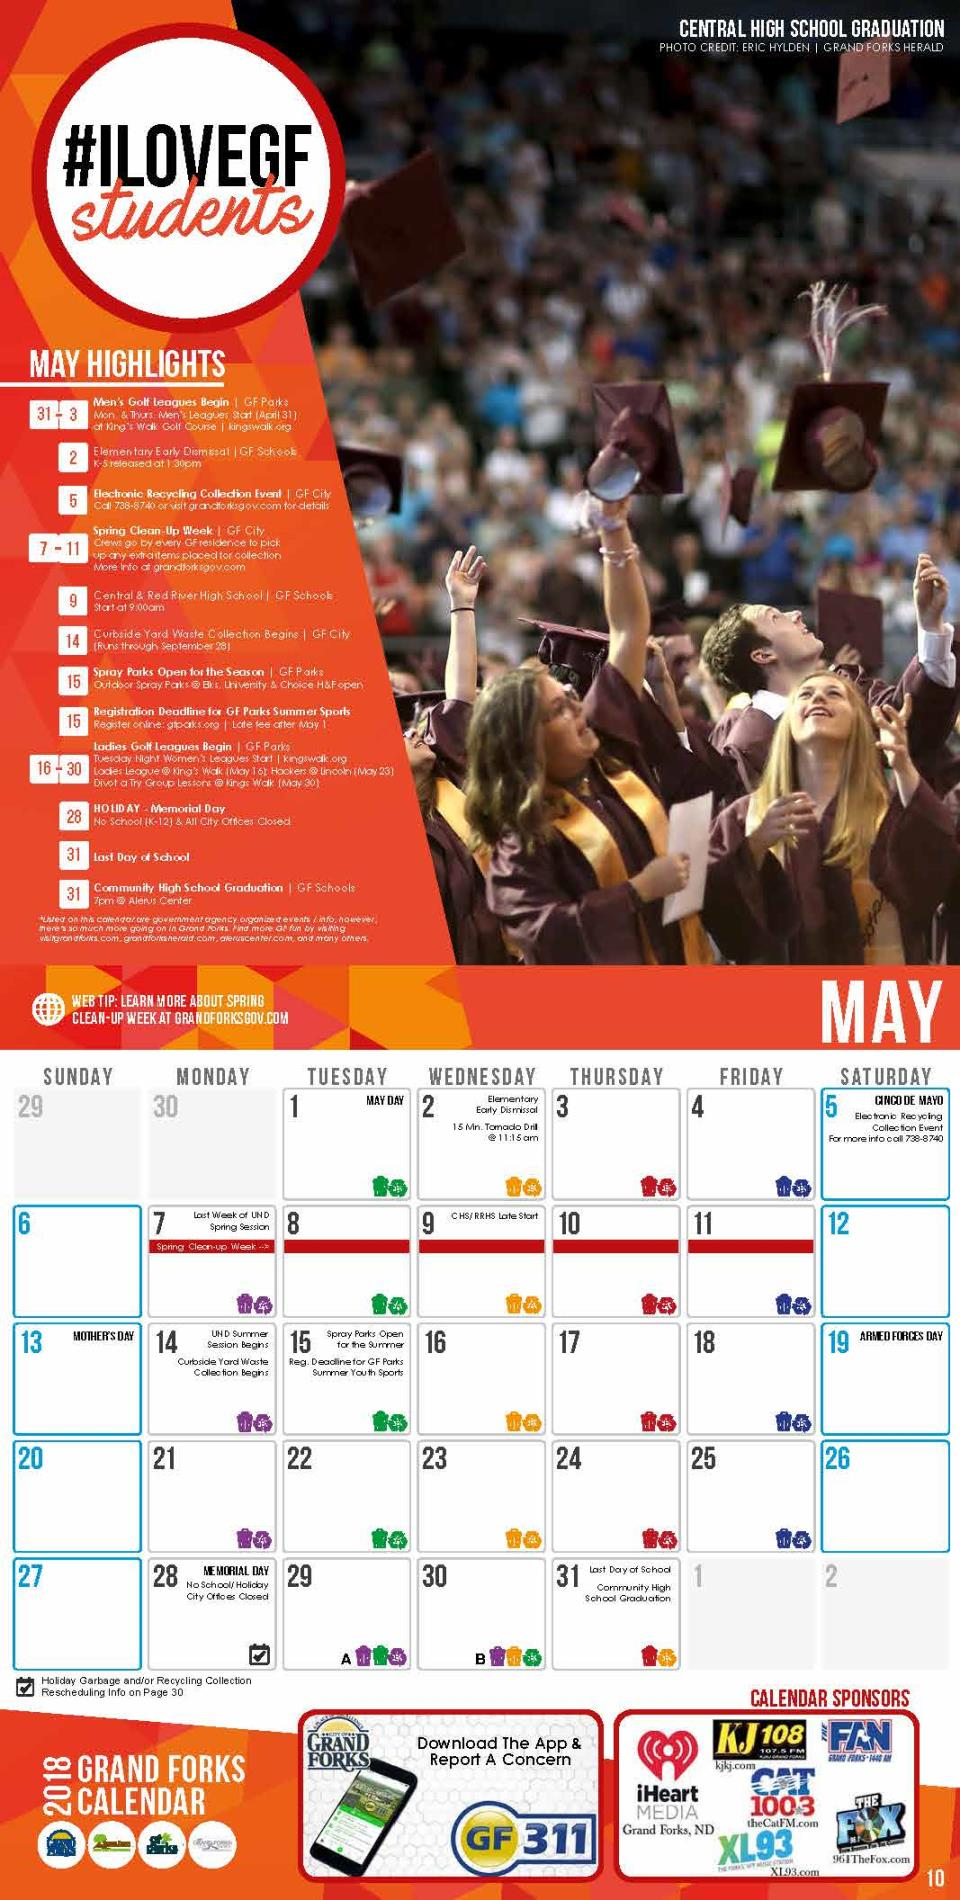 2018 Grand Forks Calendar - May